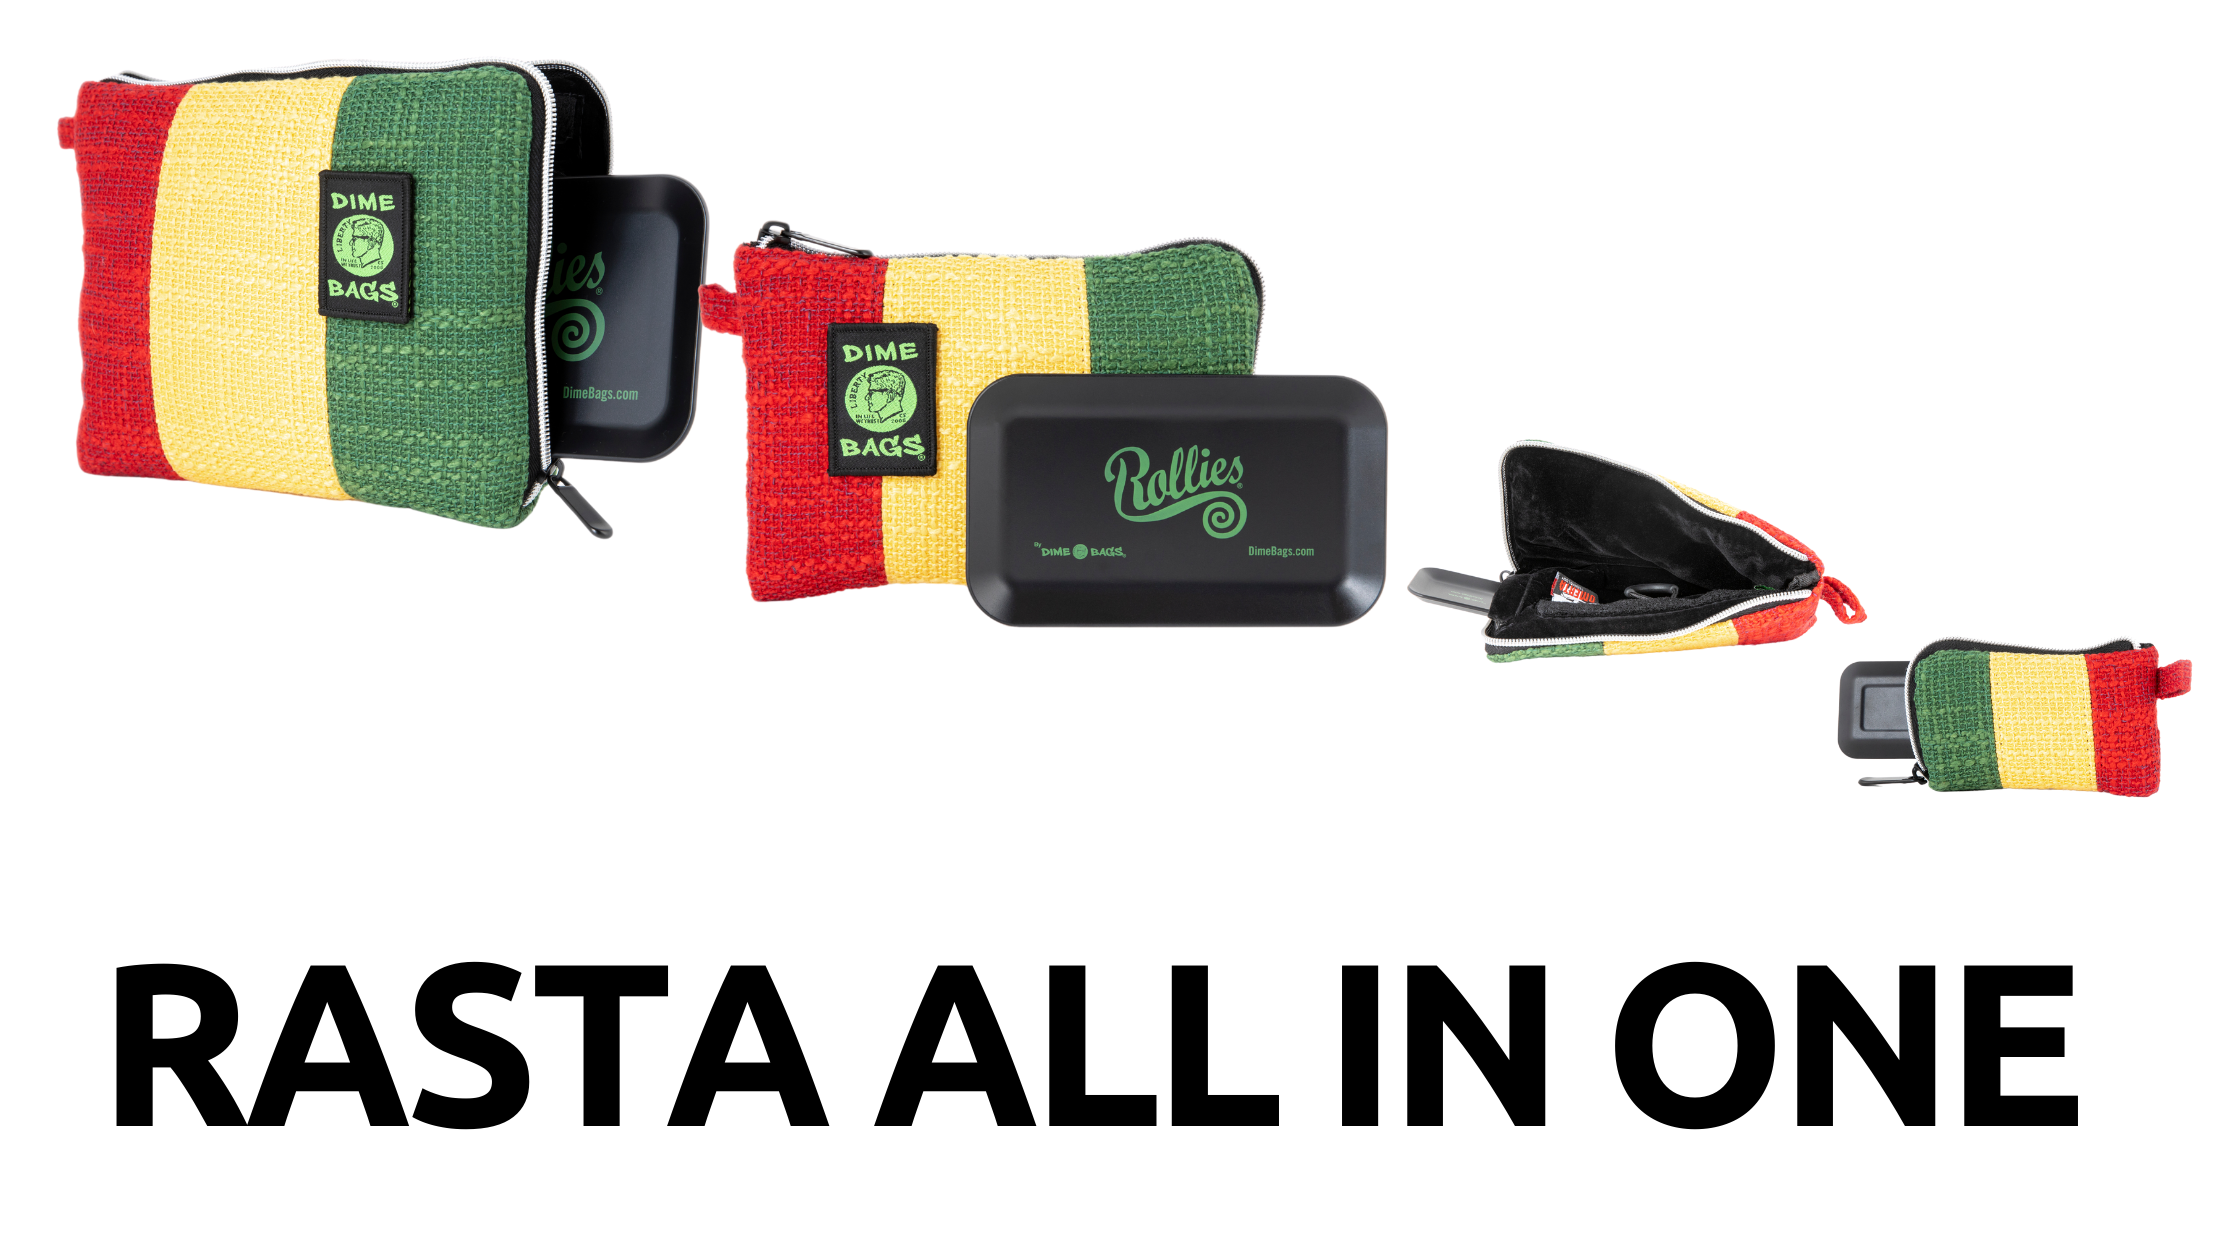 Rasta All In One | New Color | Dime Bags | Padded Pouch | Rasta